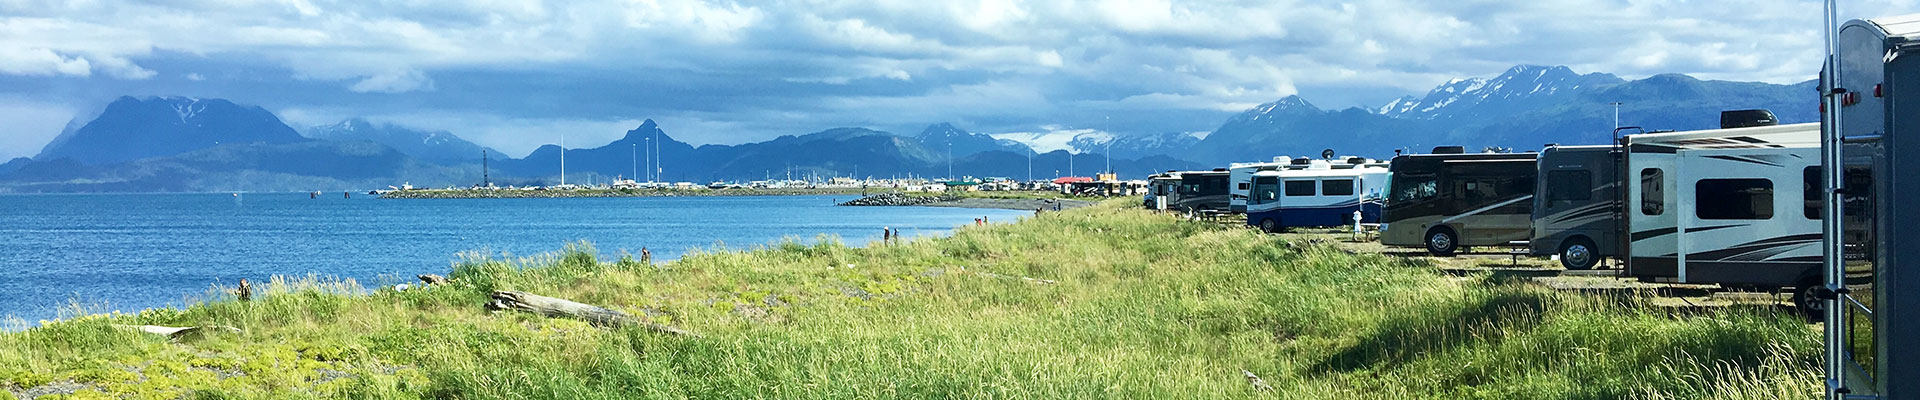 Fantasy RV Tours: 60 Day Premier Alaska (60APAP-071822)